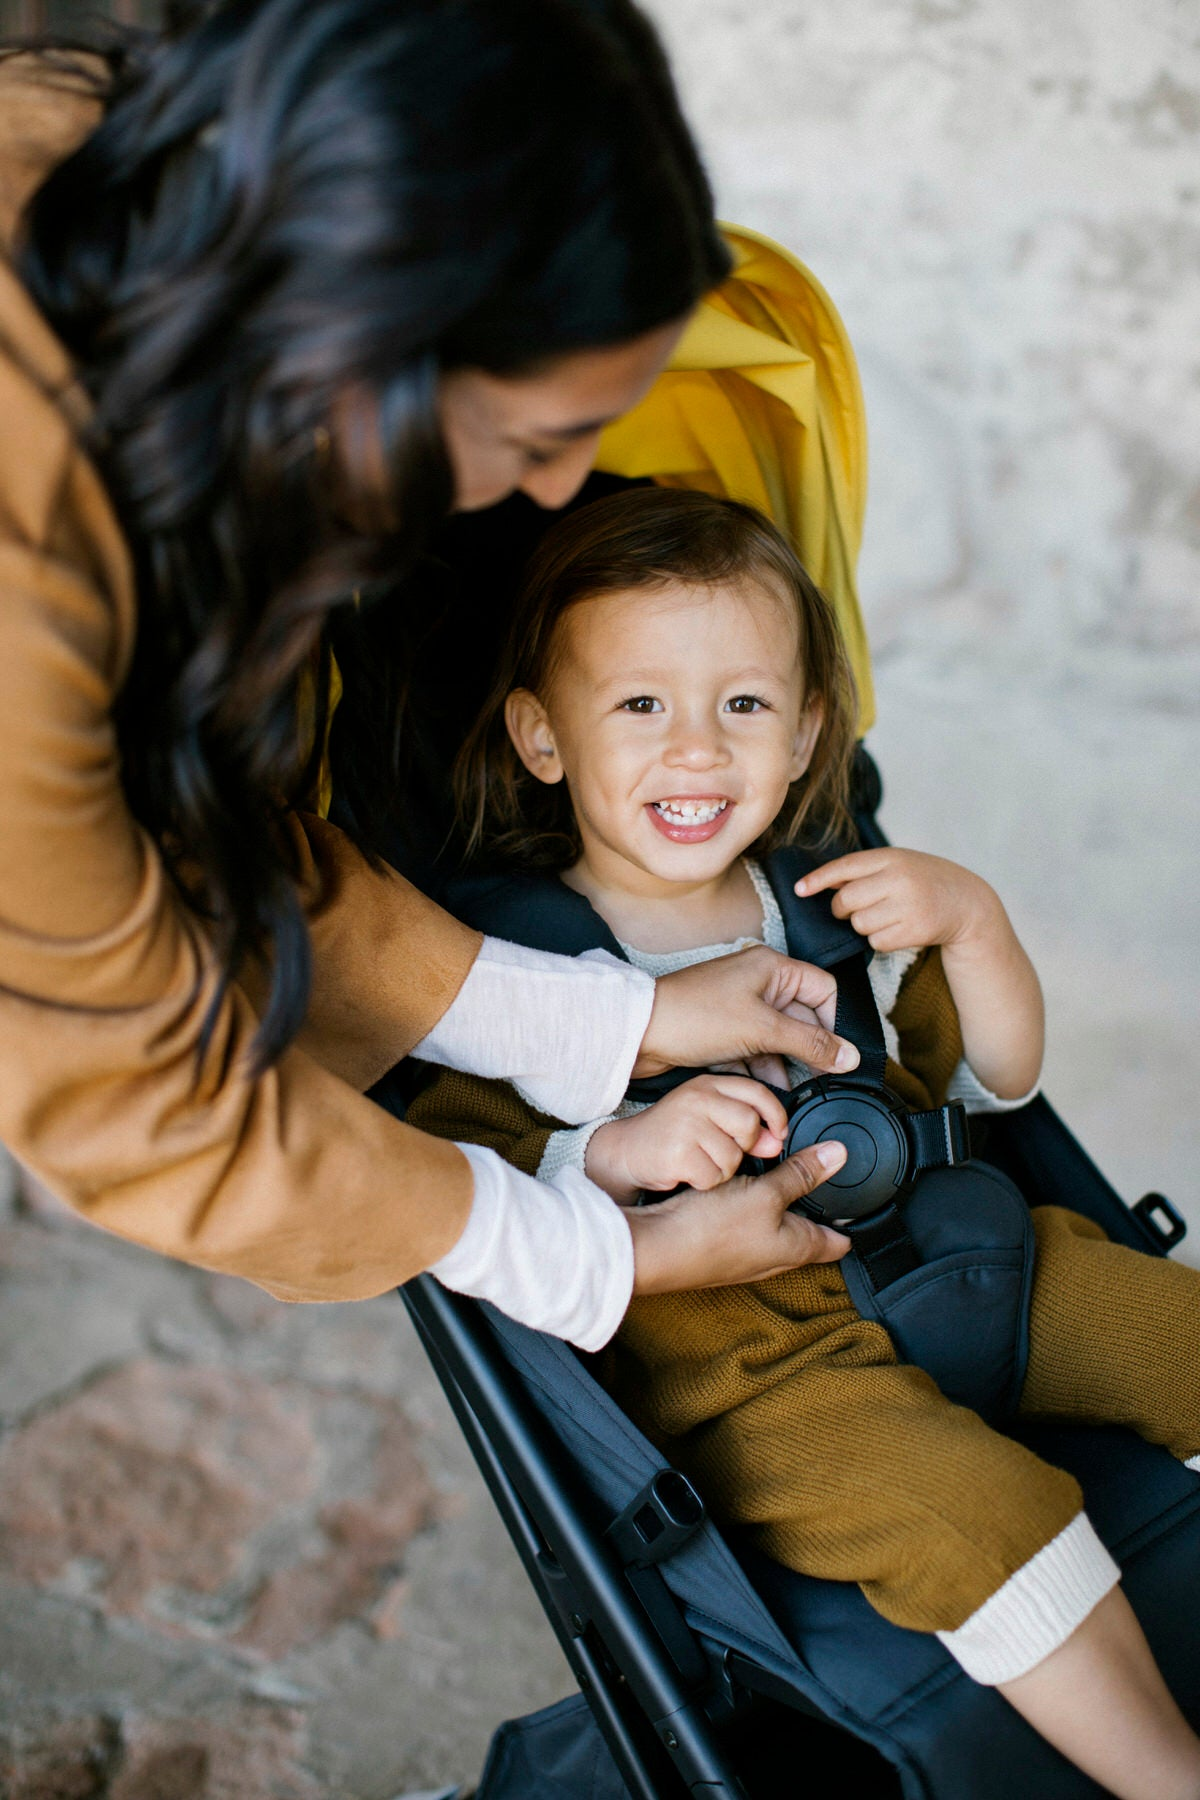 Hendrix smiles at camera from the Peli stroller